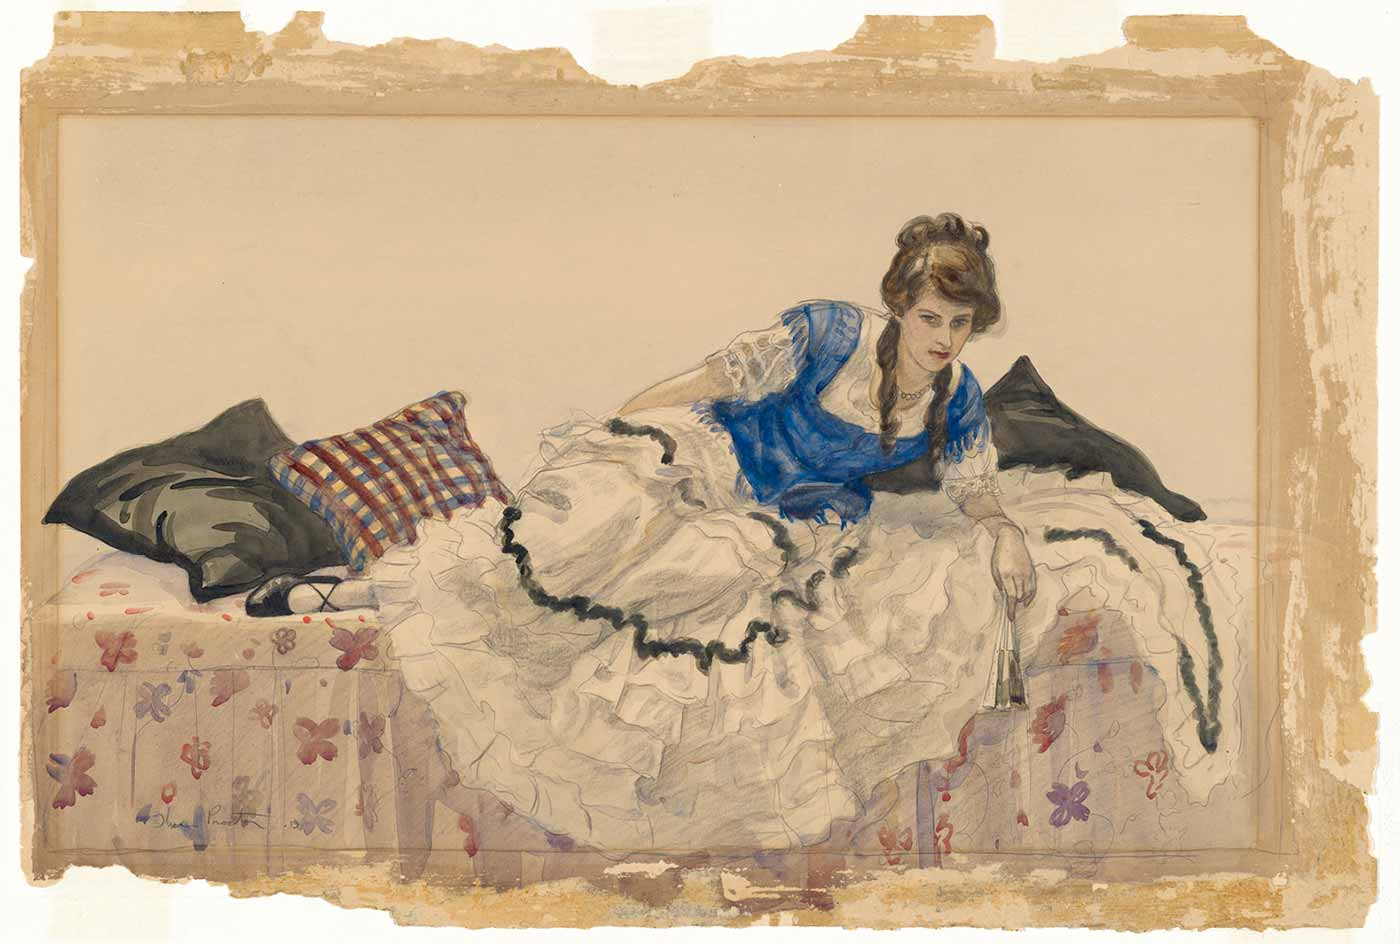 Watercolour painting showing a woman reclining on a daybed. The woman's dress has a blue bodice and white, ruffled skirt. She holds a fan in one hand.